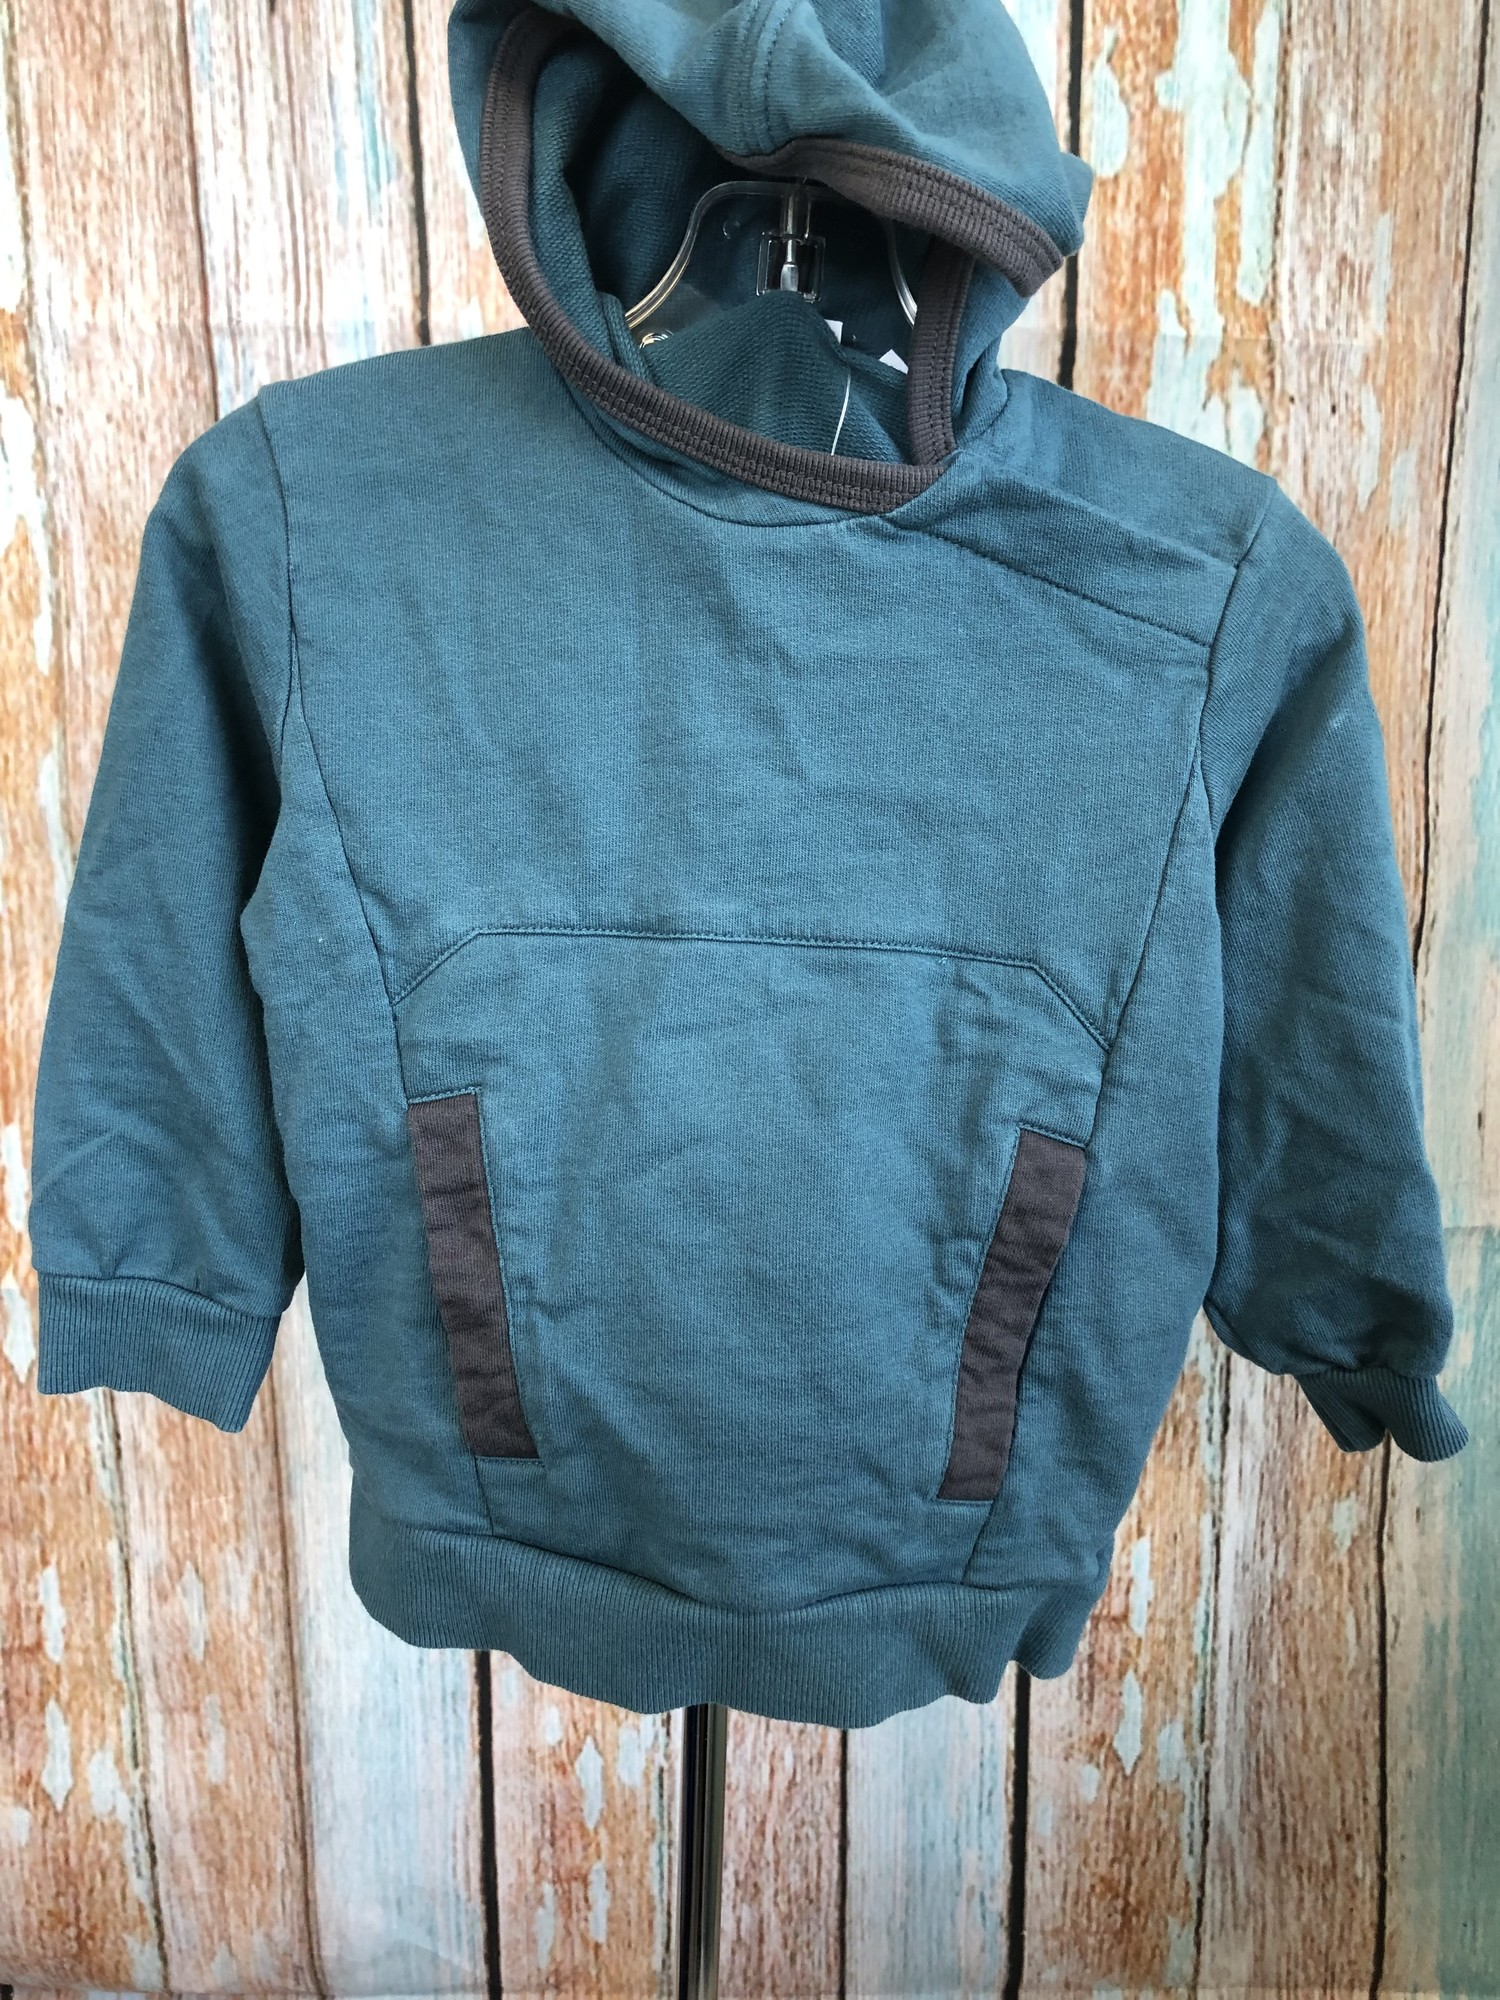 Mexx sweatshirt wtih a long front pocket, hood and two snaps on the shoulder. The dark teal with grey accents makes this sweatshirt unique.